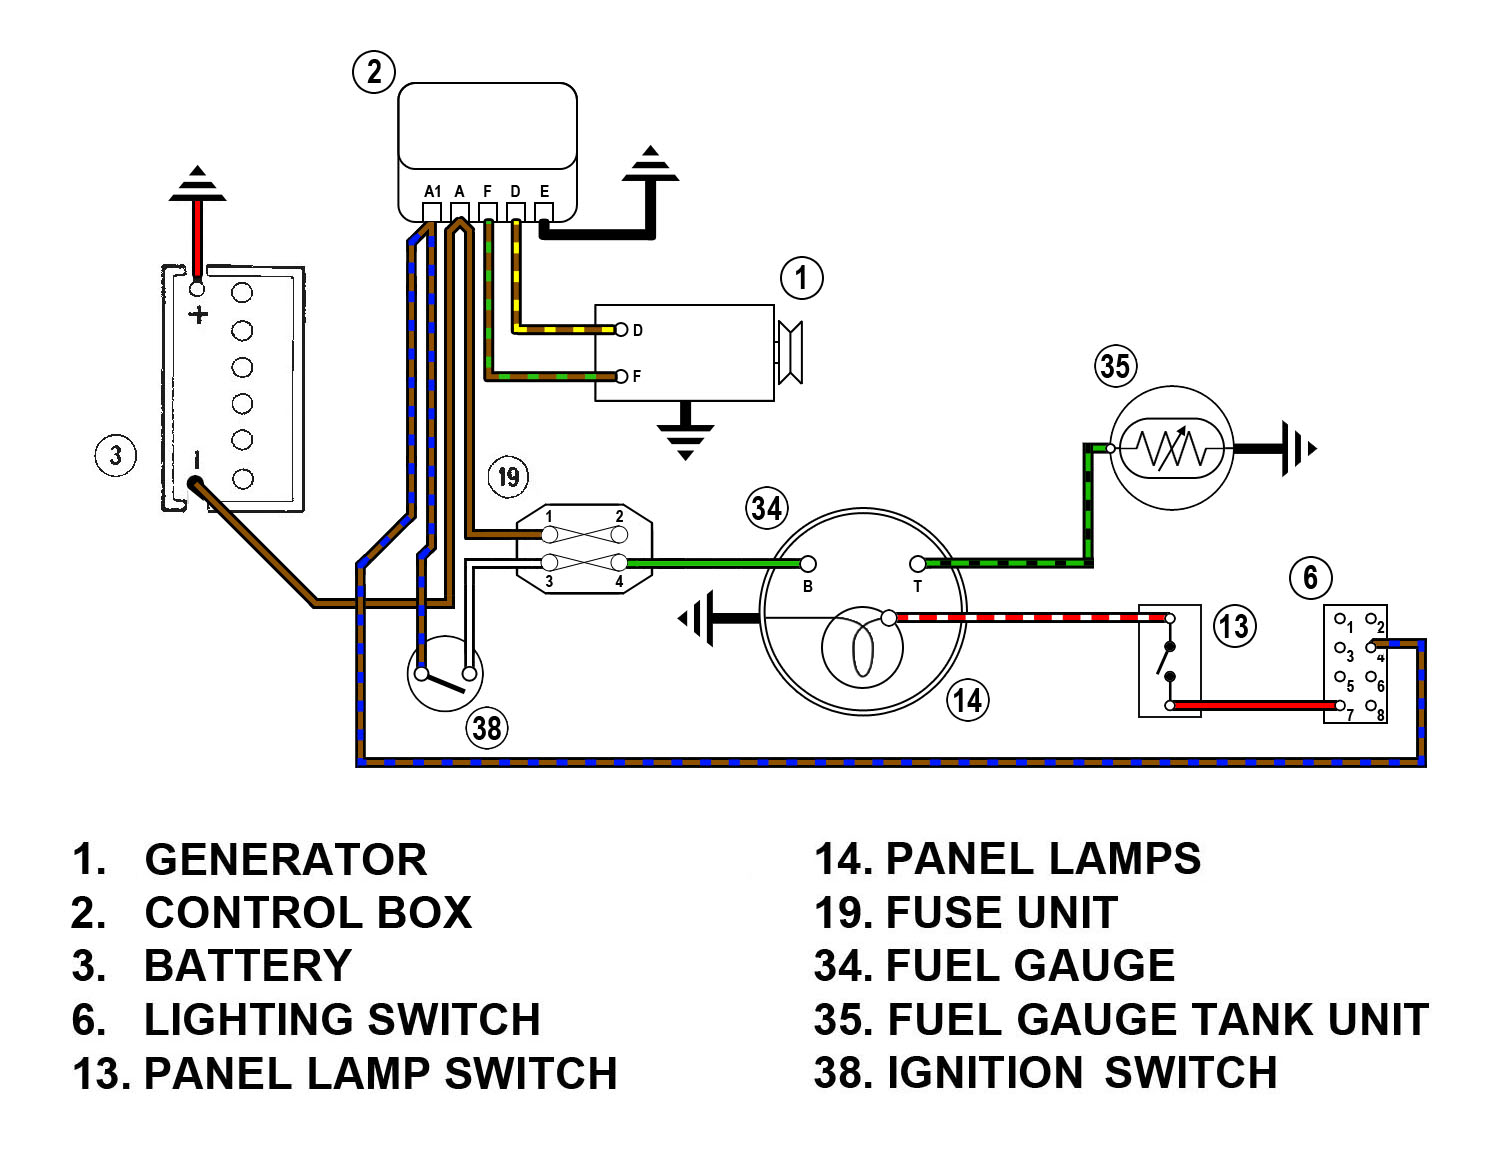 Fuel Gauge Wiring Diagram - wiring diagram on the net on